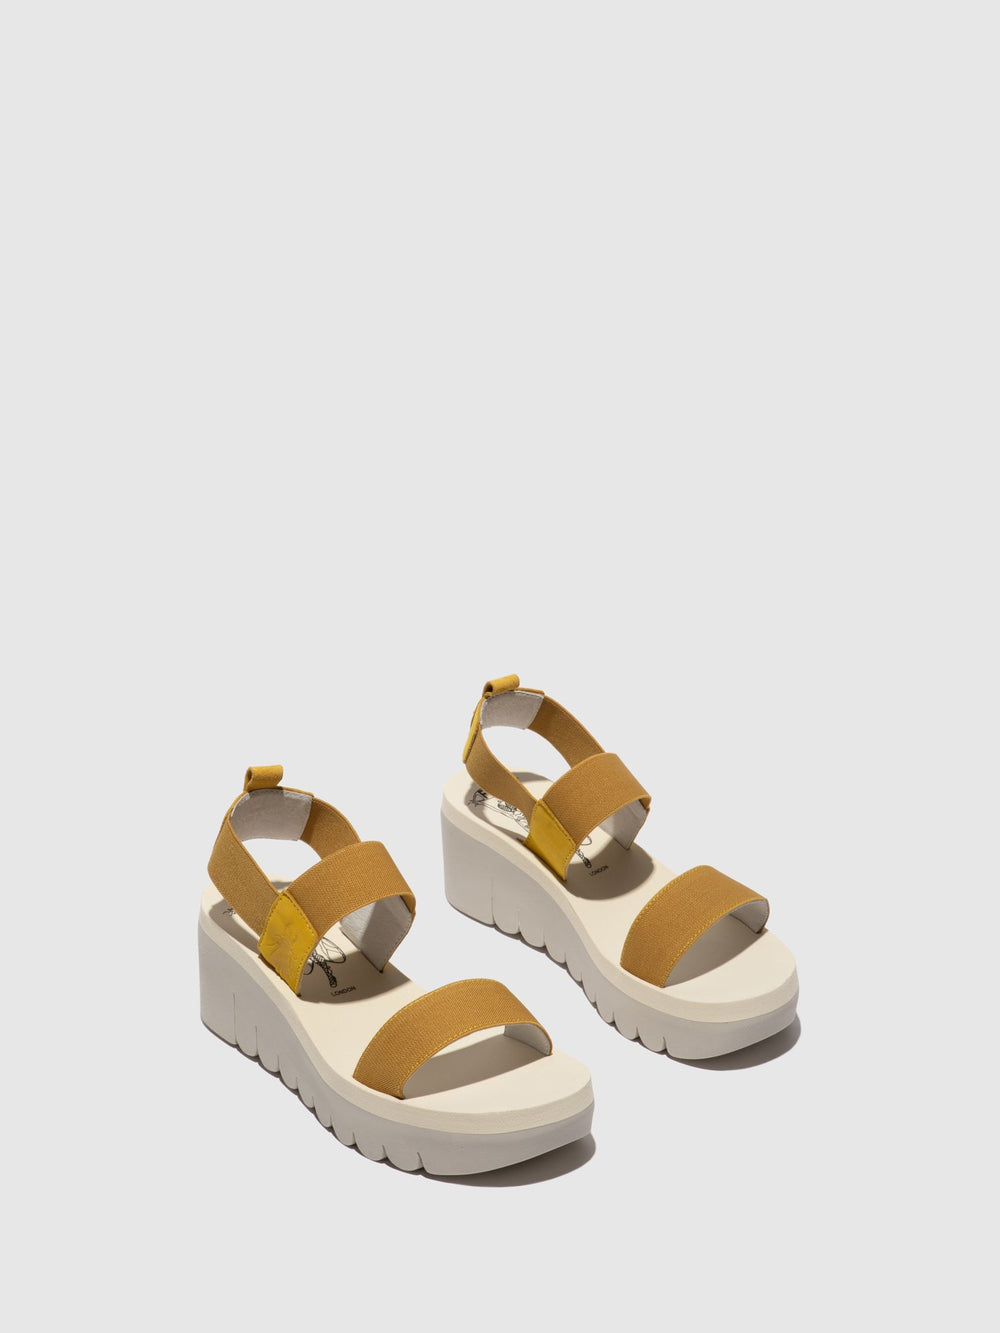 Sling-Back Sandals YACI594FLY BRIGHT YELLOW (BEIGE)